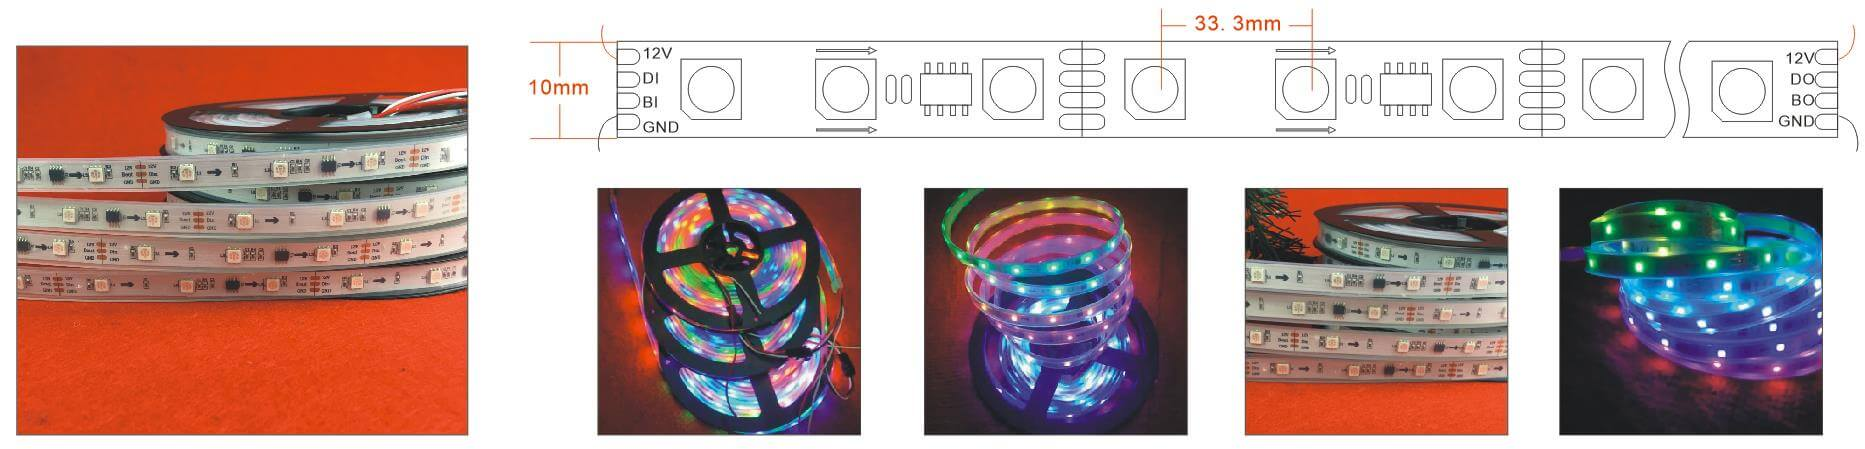 ws2818 programmable led strip 30LED meter